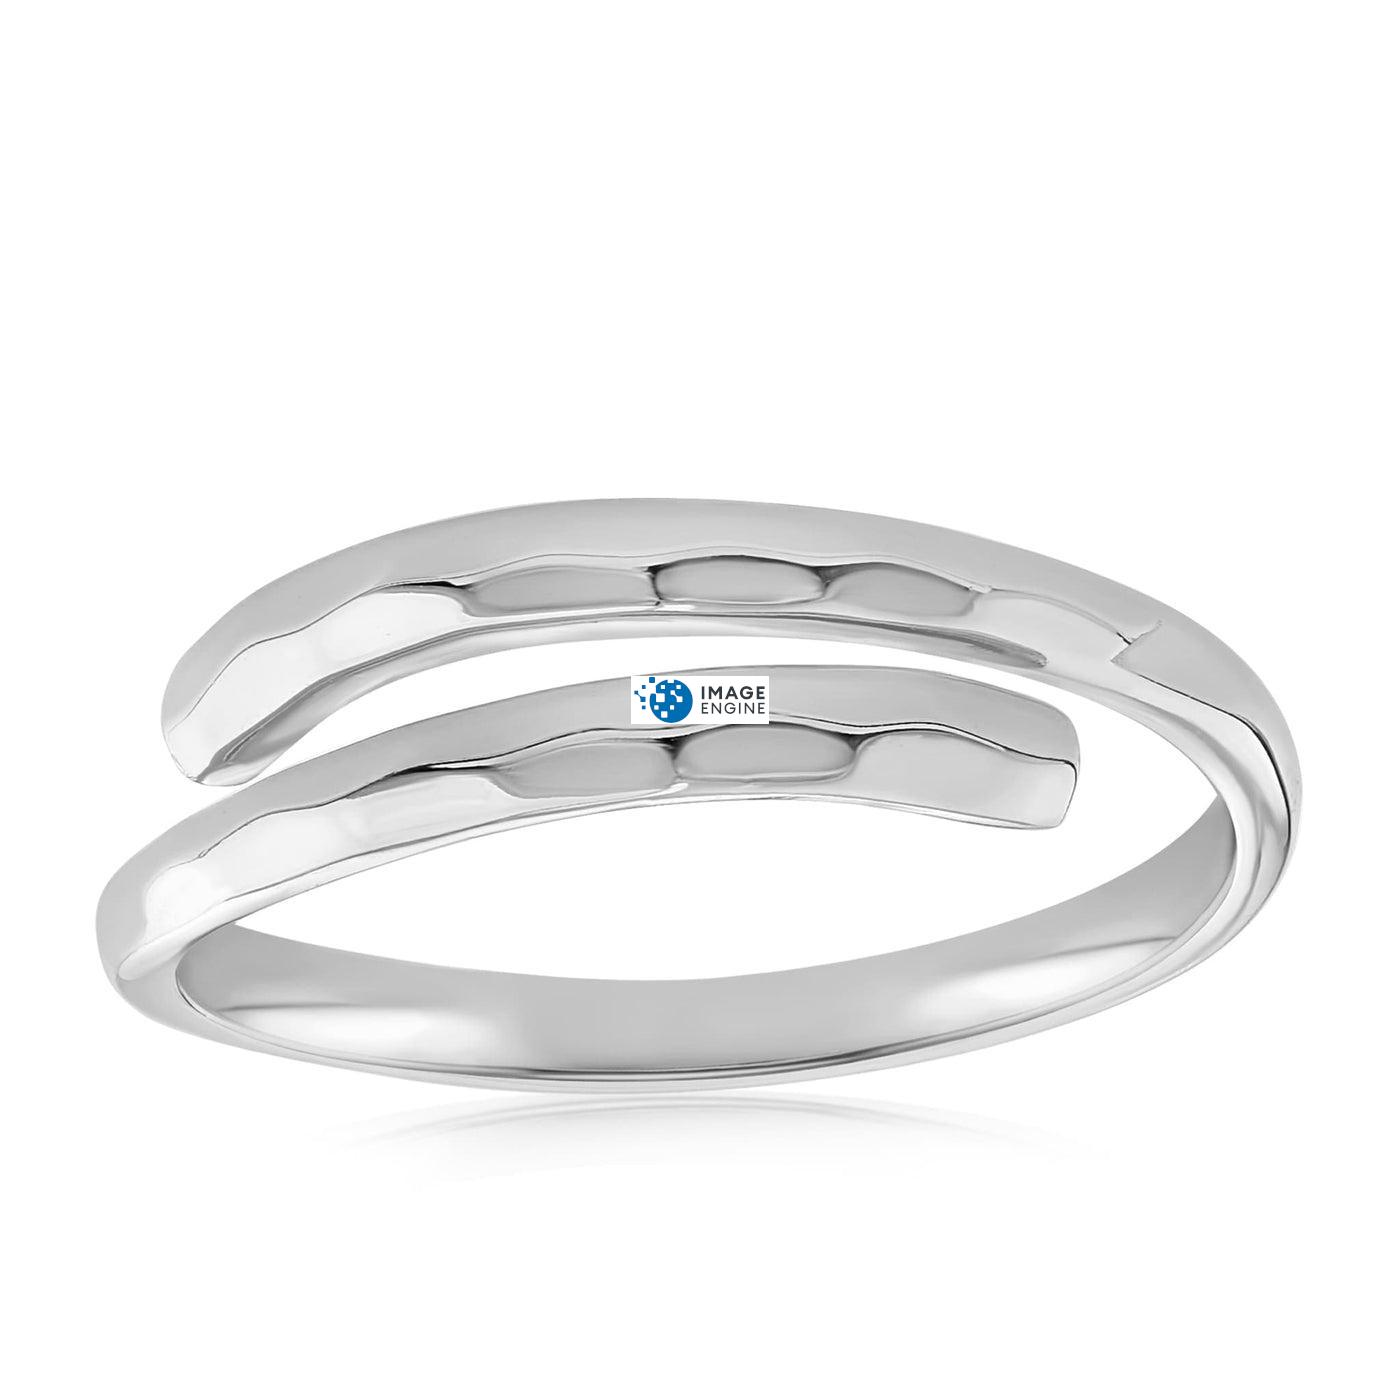 Minimalist Thumb Ring - Front View Facing Up - 925 Sterling Silver